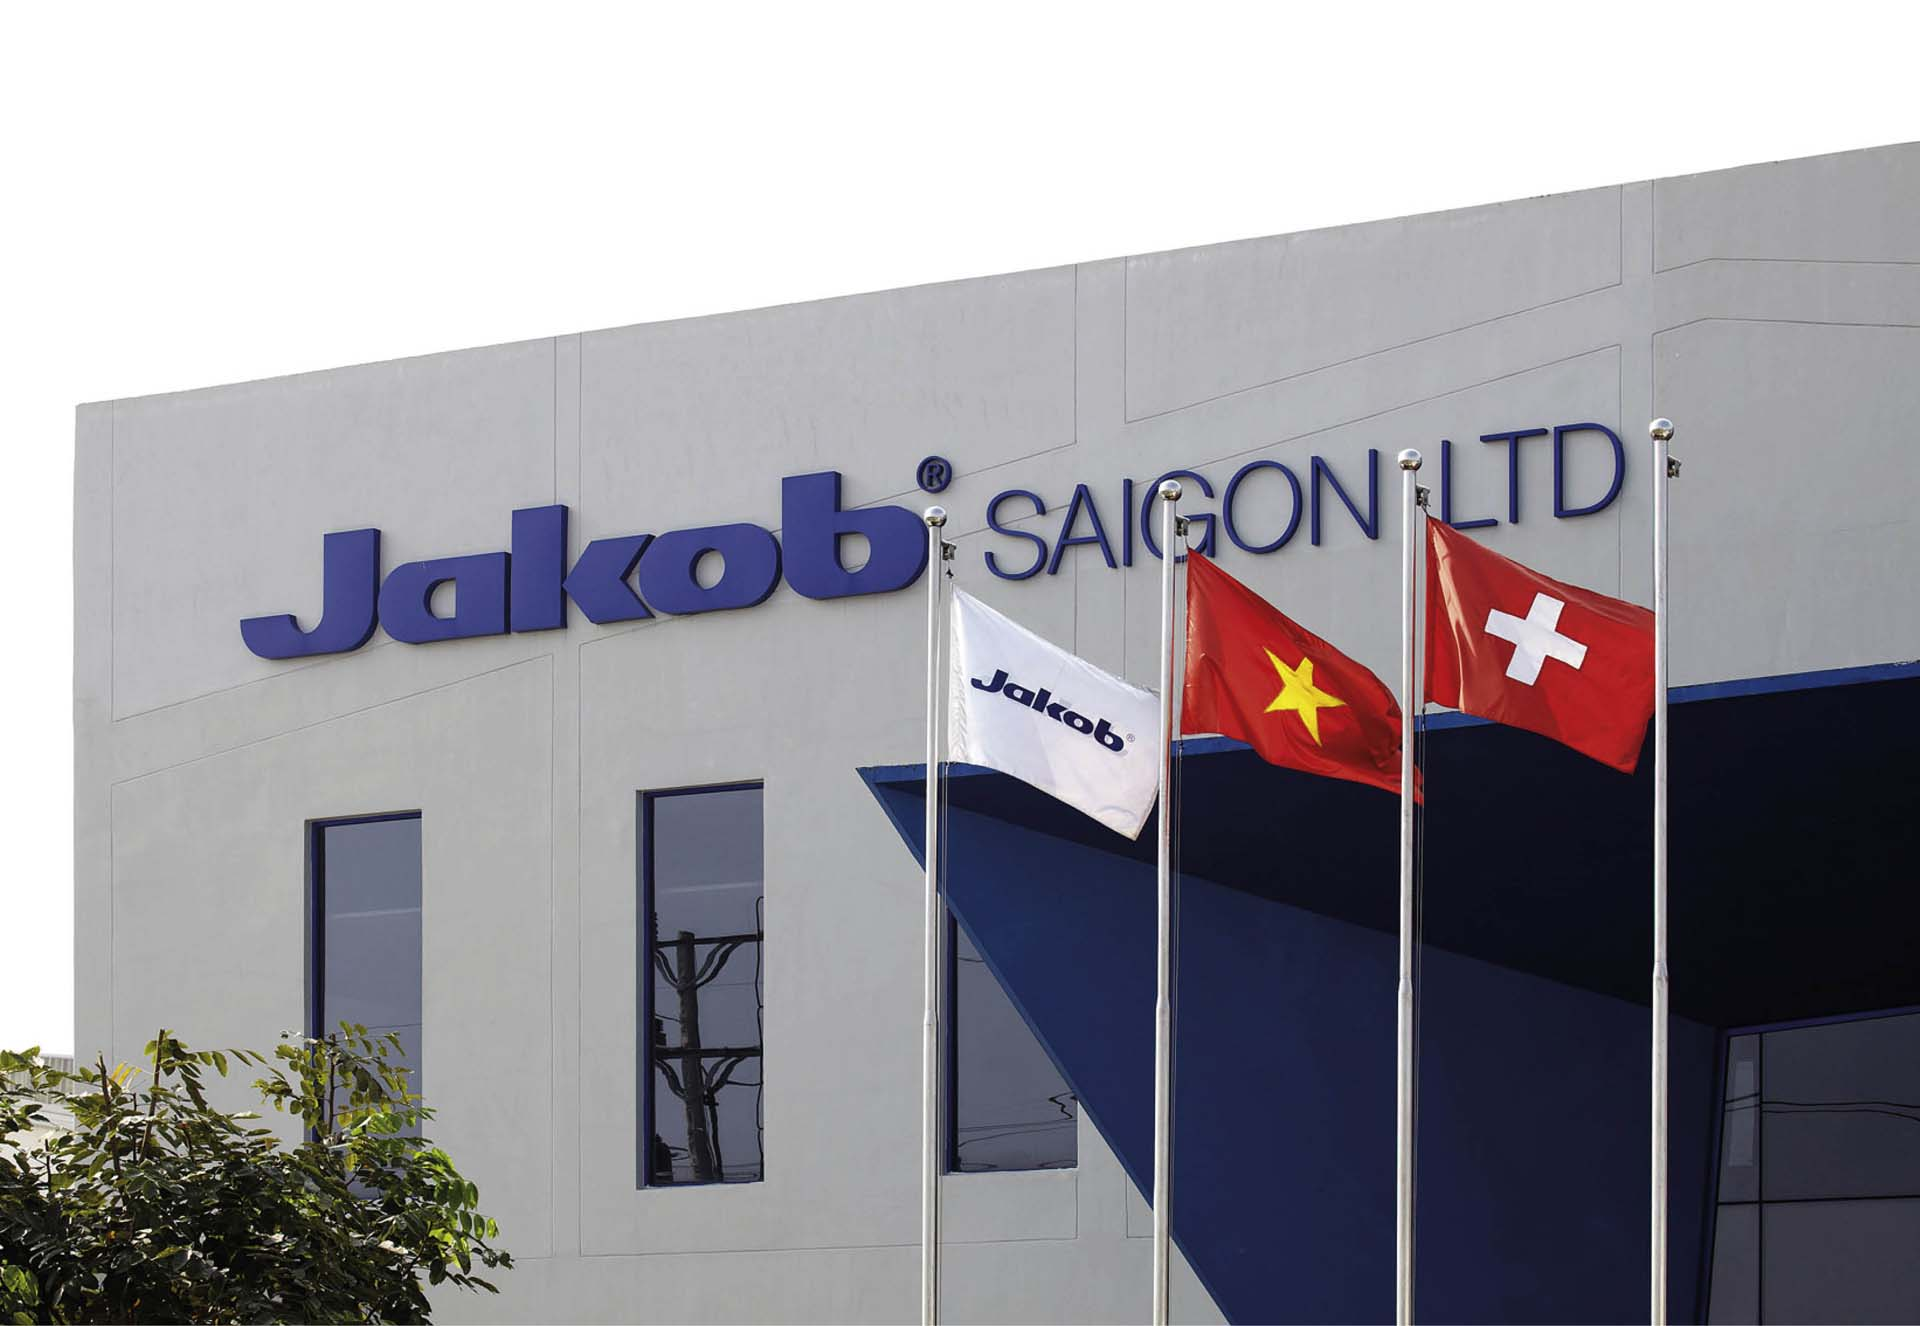 Image of Jakob Saigon factory in 2008 with the flags of Jakob, Vietnam and Switzerland